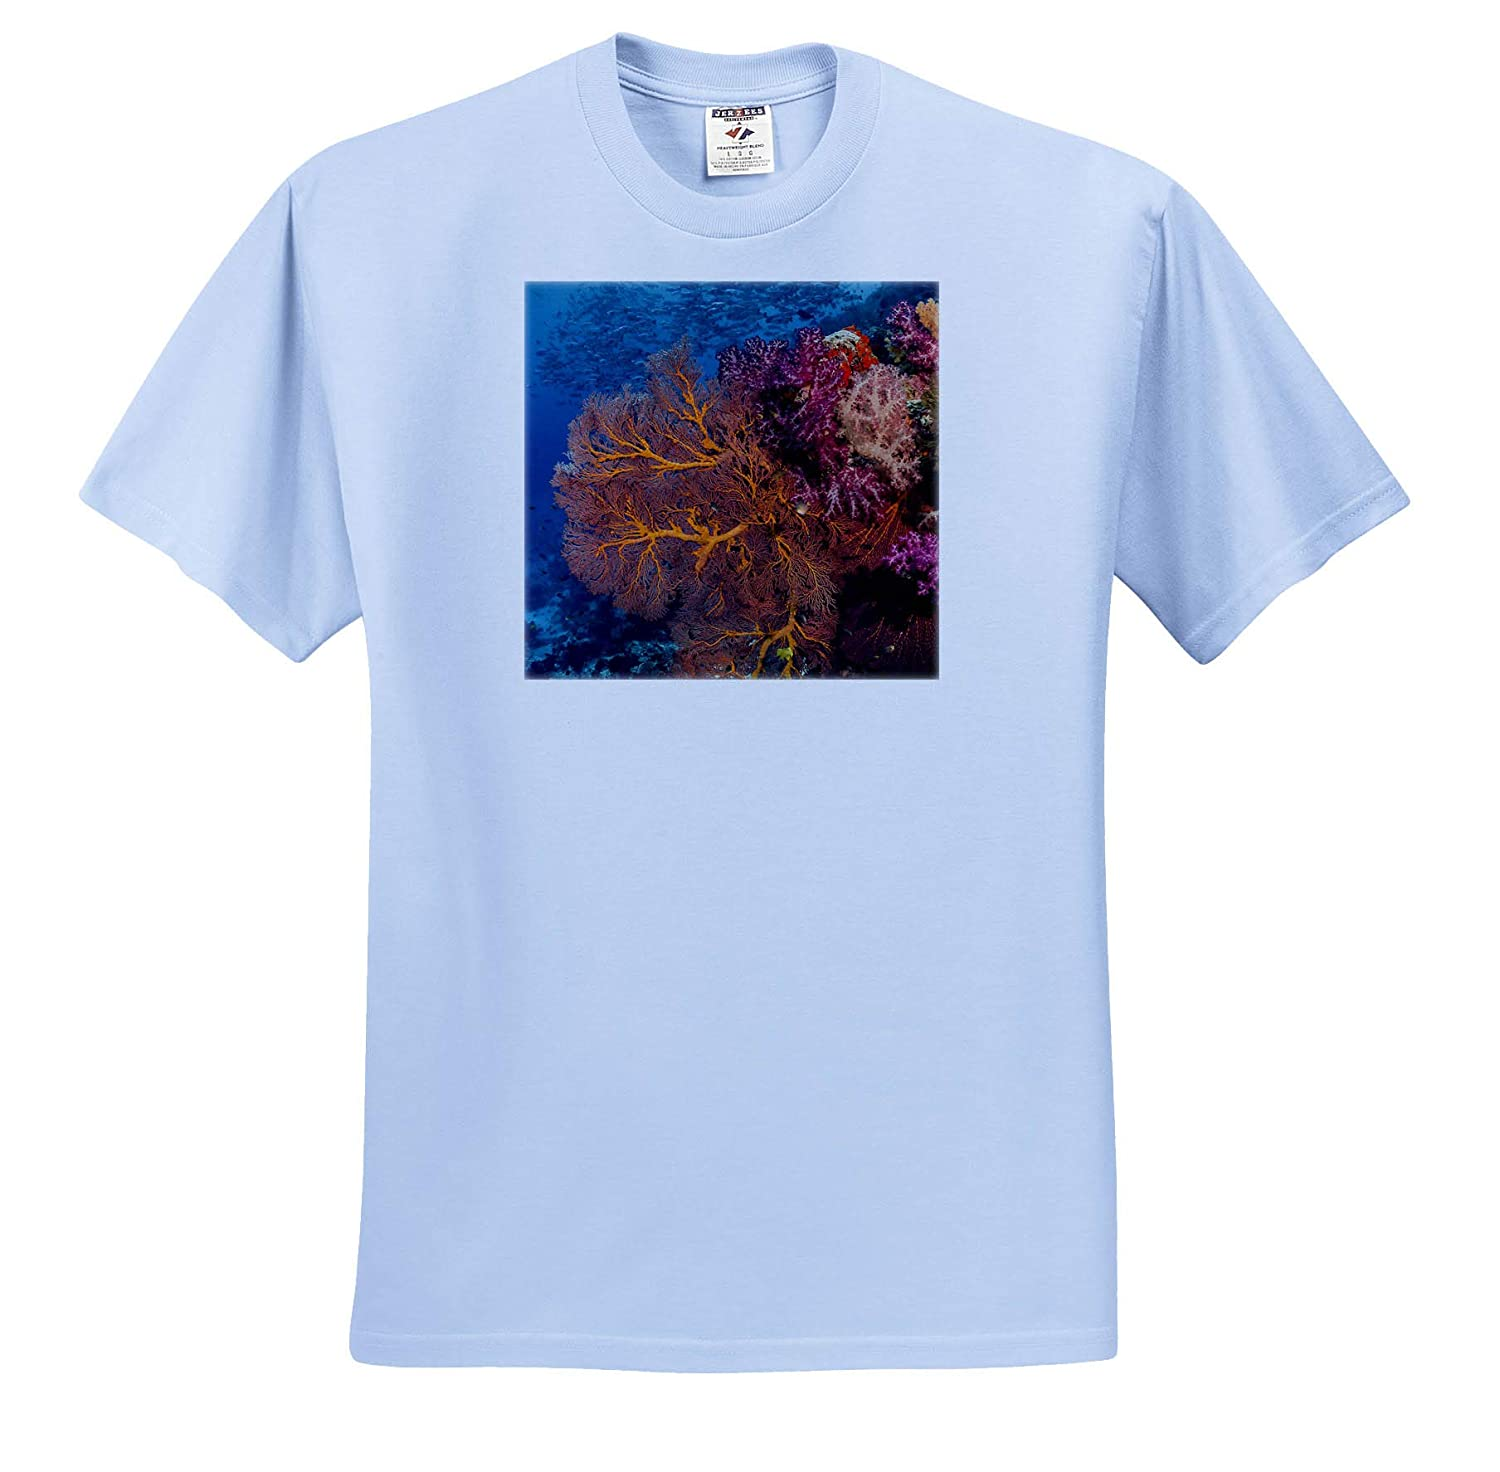 Underwater 3dRose Danita Delimont Fiji ts/_314013 - Adult T-Shirt XL Fish and Coral Reef